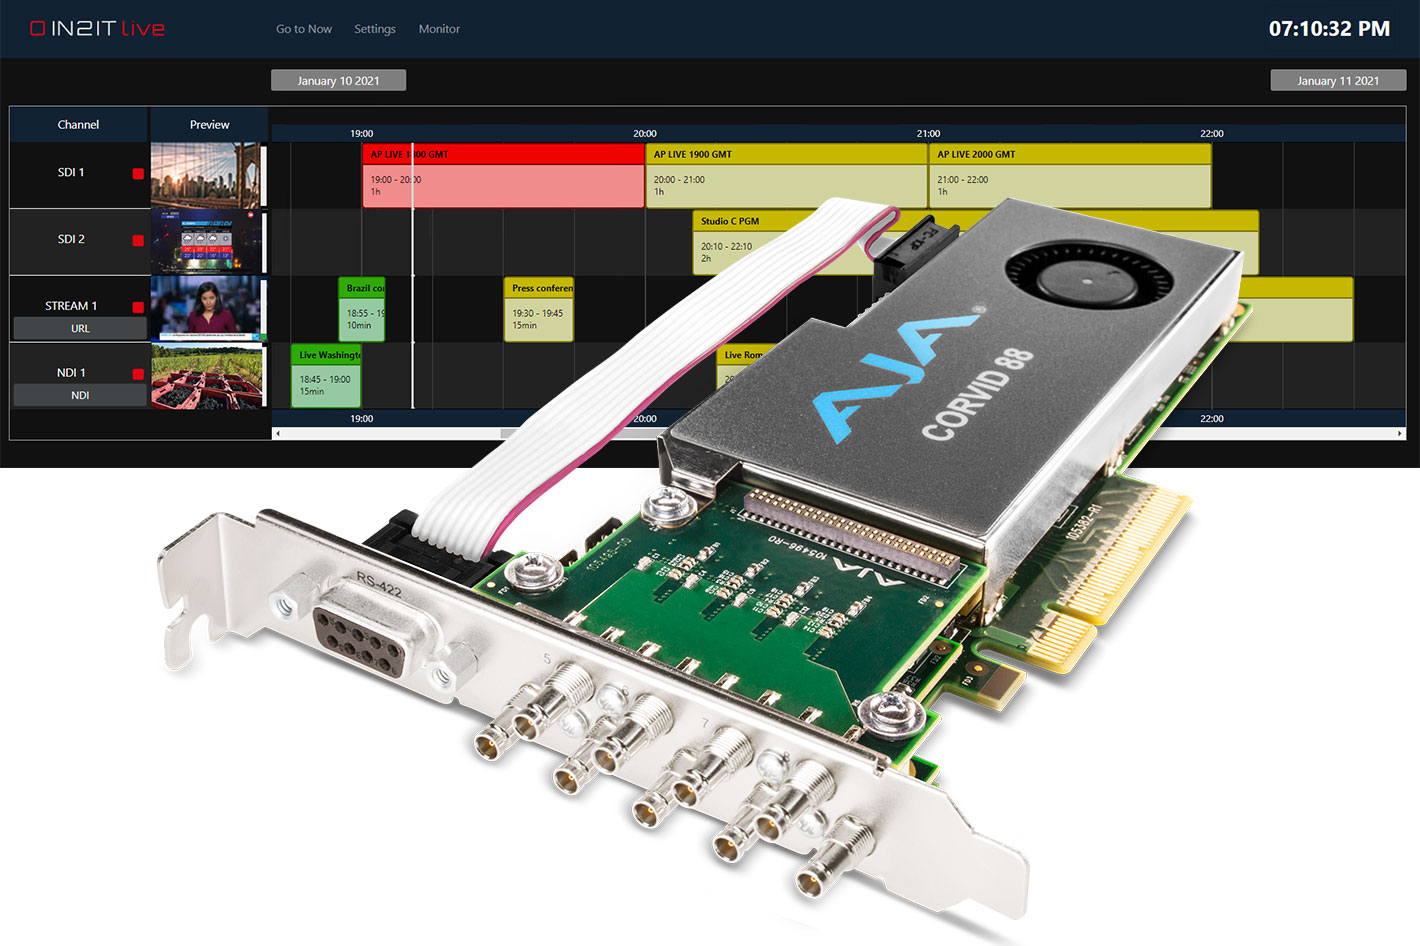 AJA I/O technology used for Woody Technologies' IN2IT